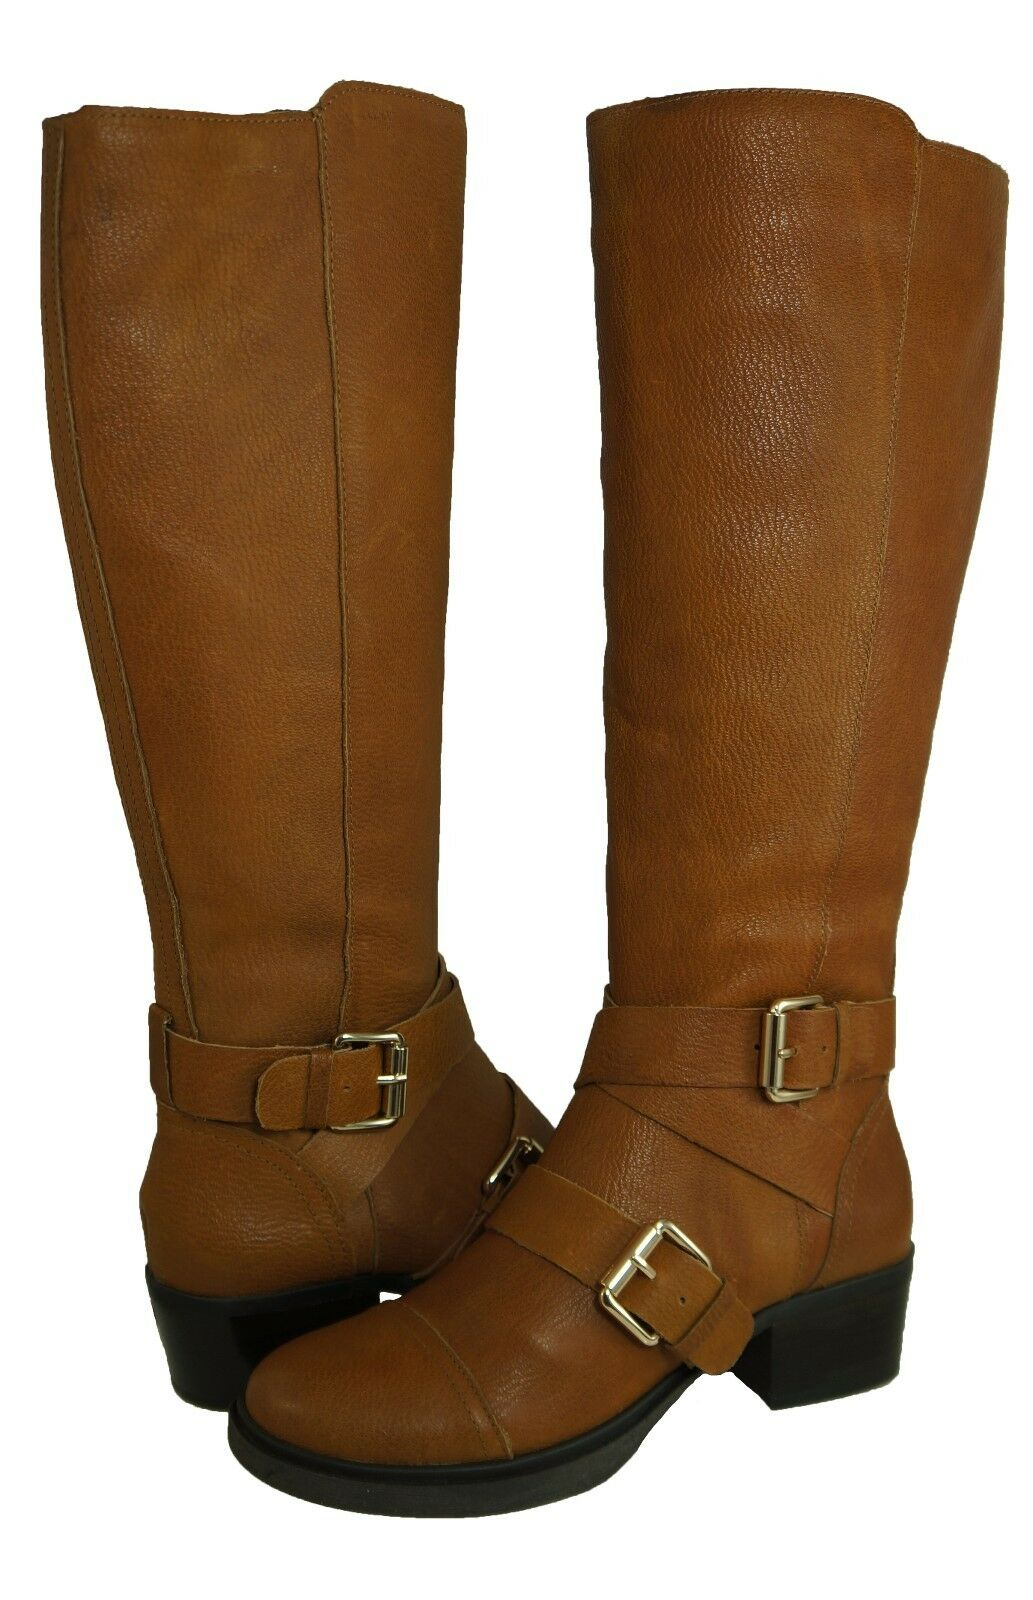 BCBG Generation Womens Marisol Brown Cognac Tall Knee High Pull-On Fashion Boots